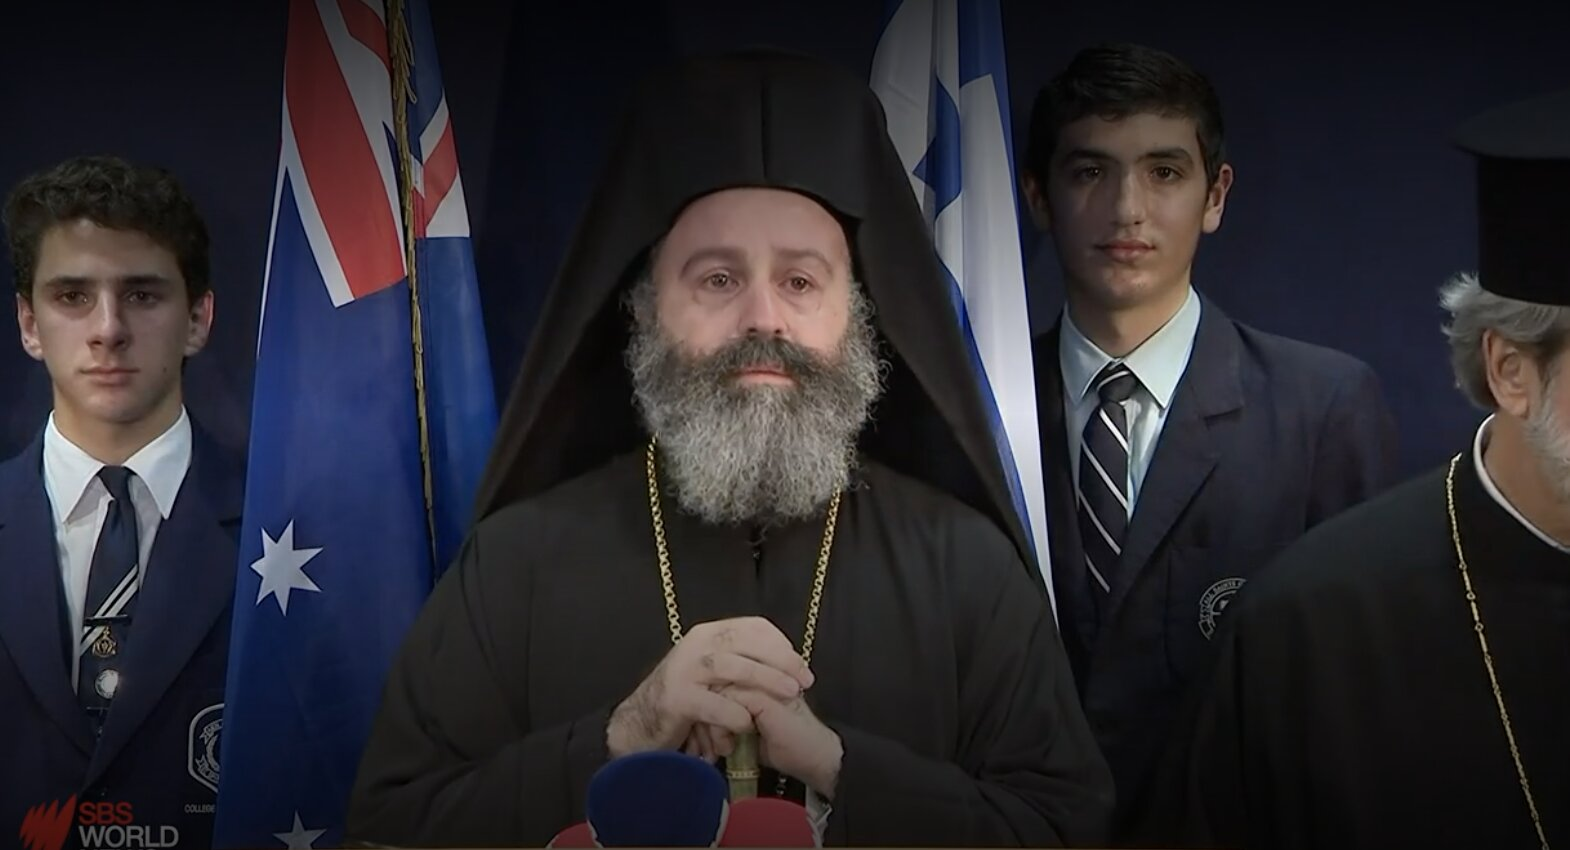 A huge welcome for the new leader of Australia's Greek Orthodox church